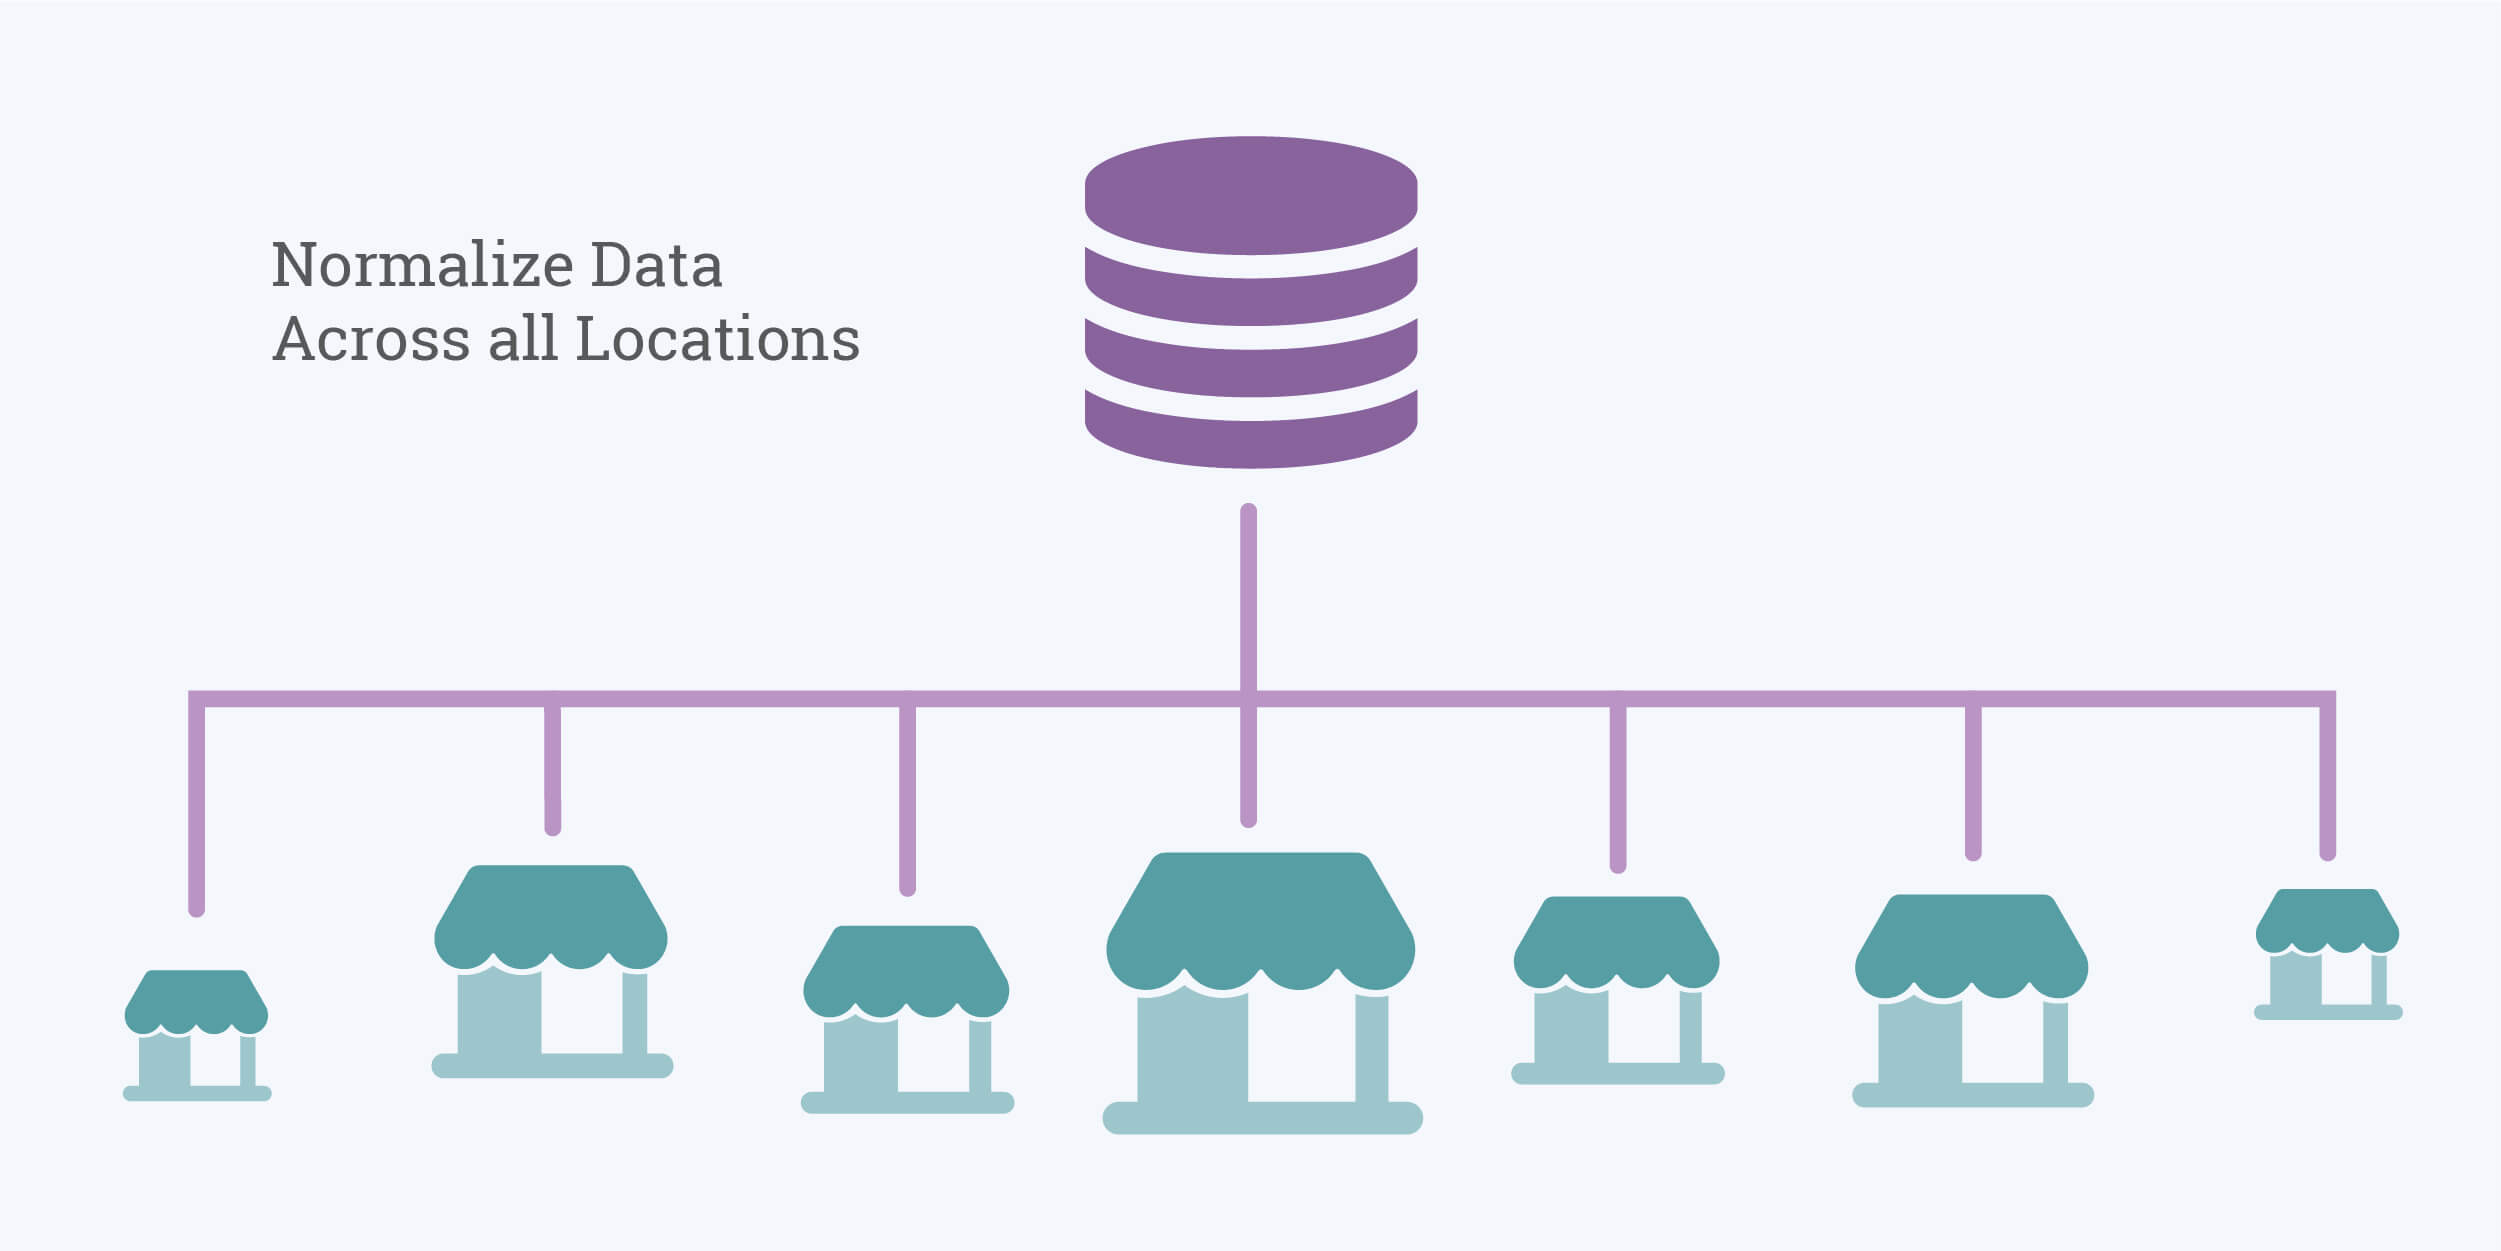 Normalizing Your Data Across All Locations